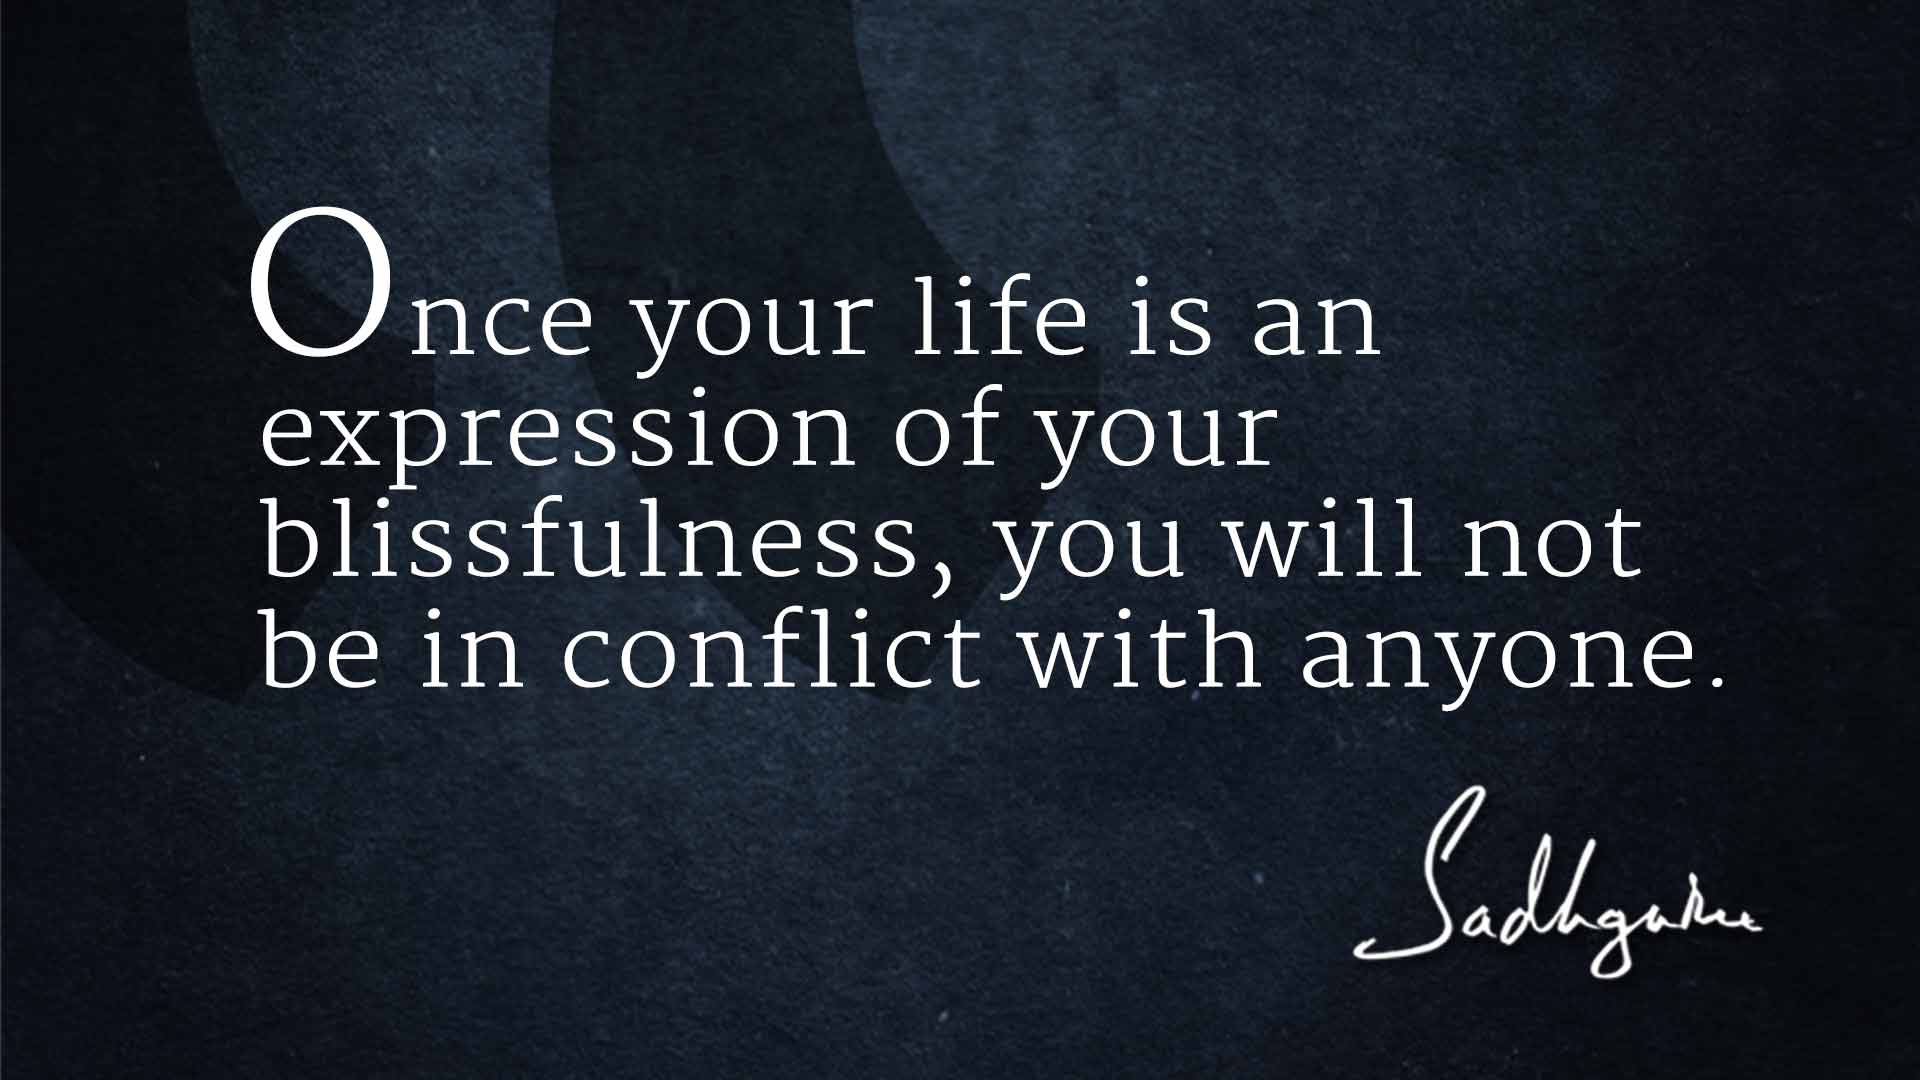 Quotes On Life From Sadhguru Isha Sadhguru